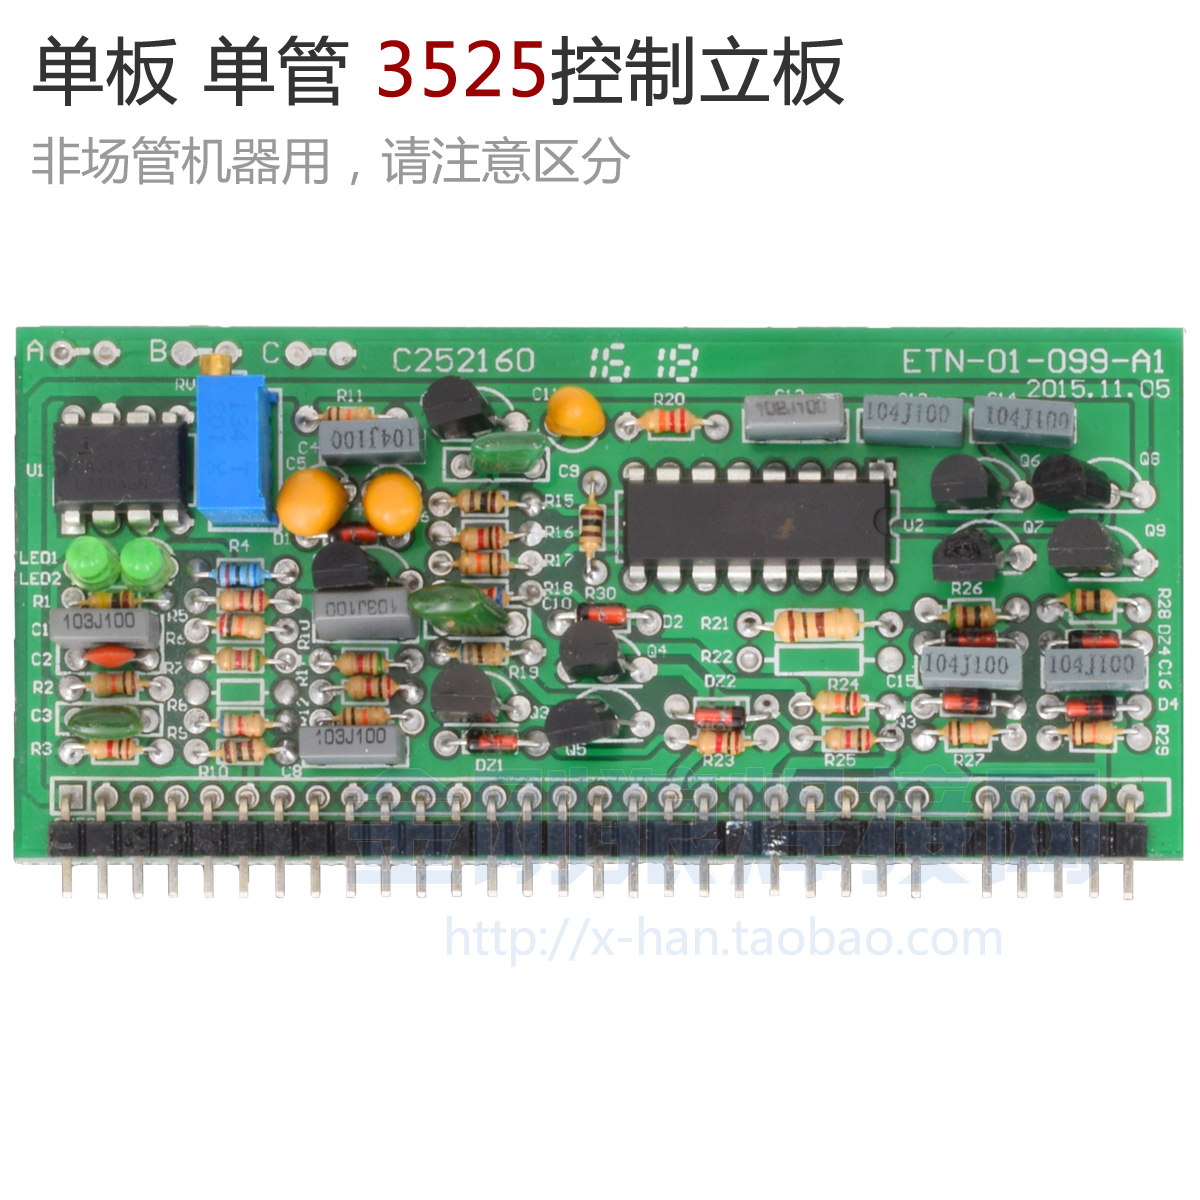 medium resolution of mosfet small control module wtih chip 3525 for zx7 tig inverter welding machine with adjustable potentiometer